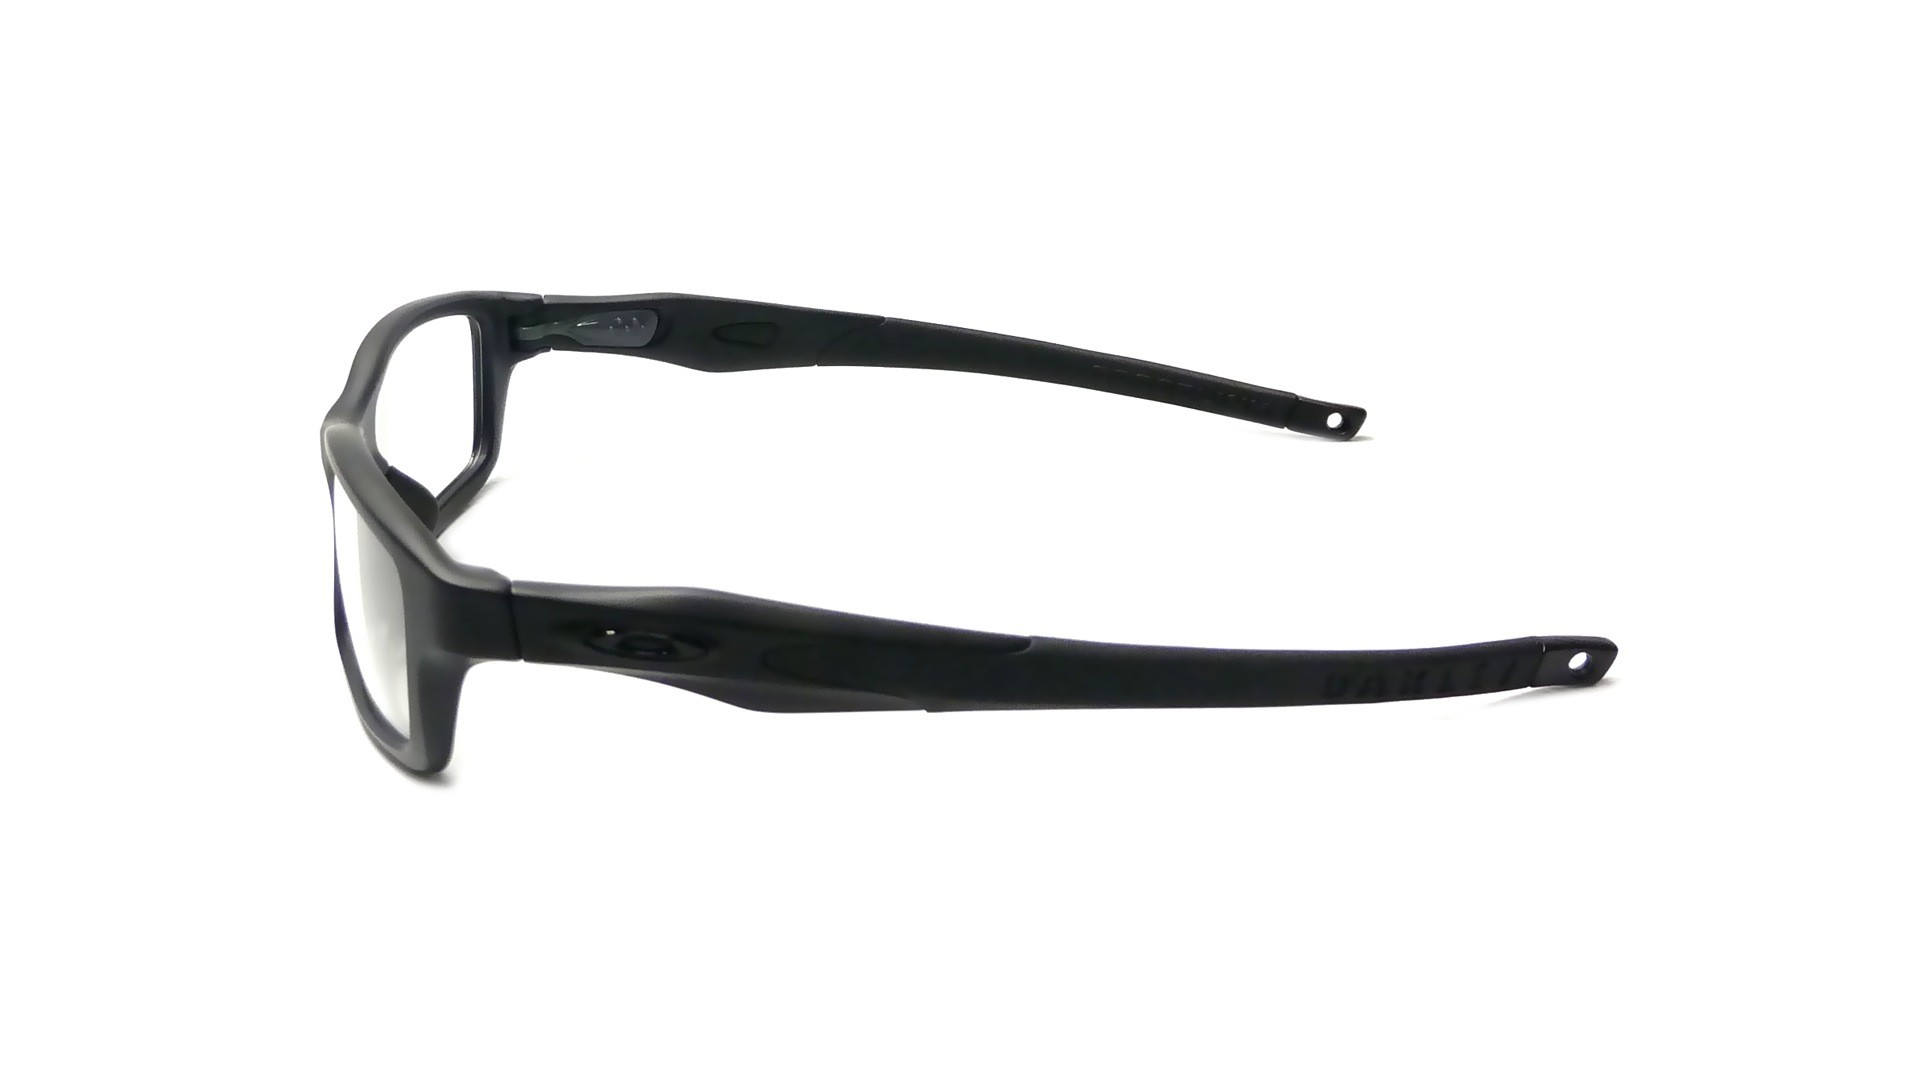 586c1f4528 Accessoire Oakley Crosslink | United Nations System Chief Executives ...